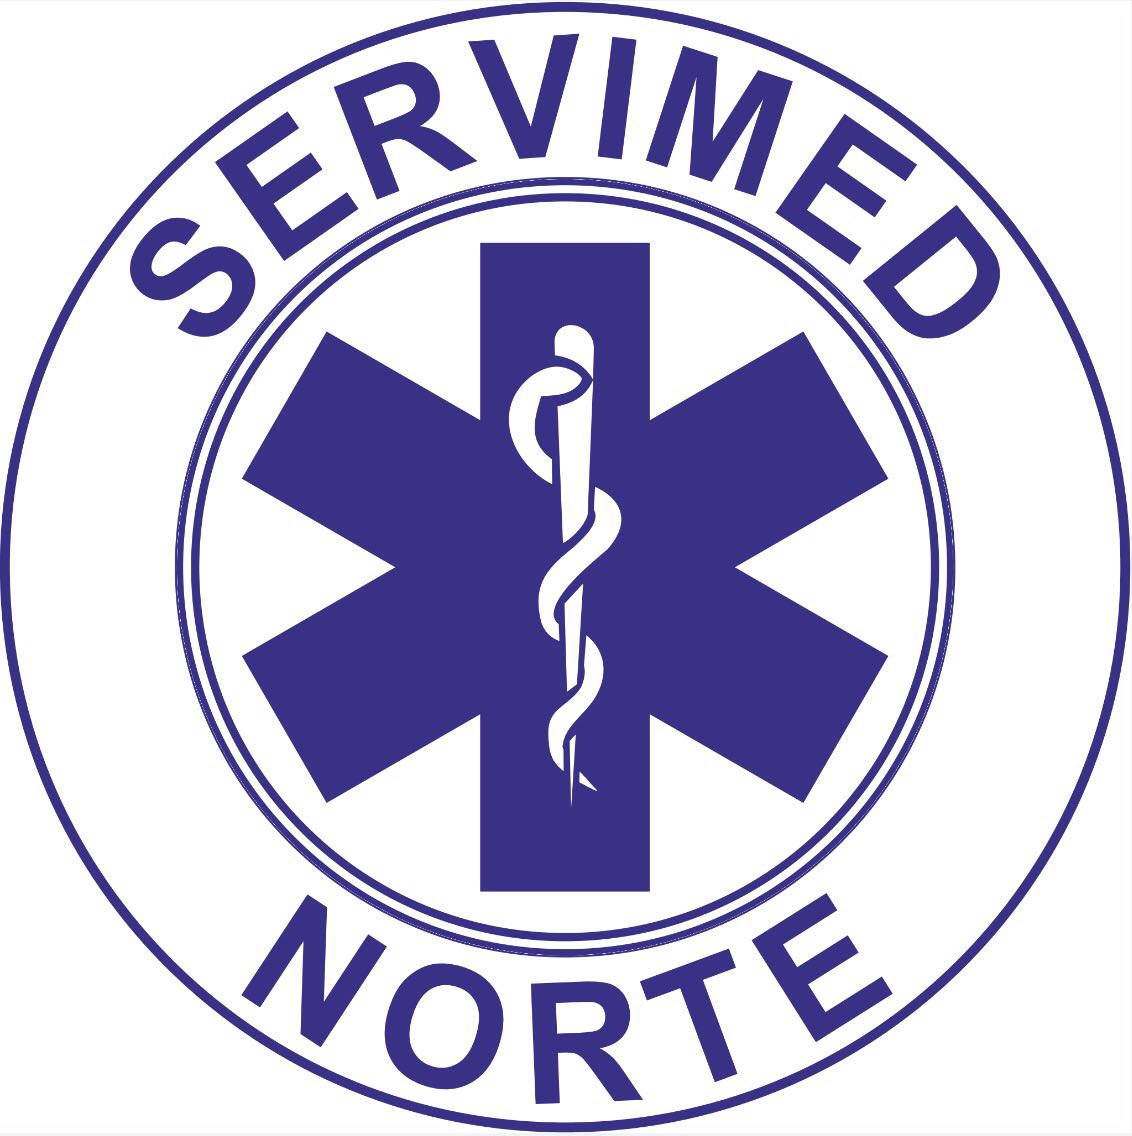 Servimed Norte